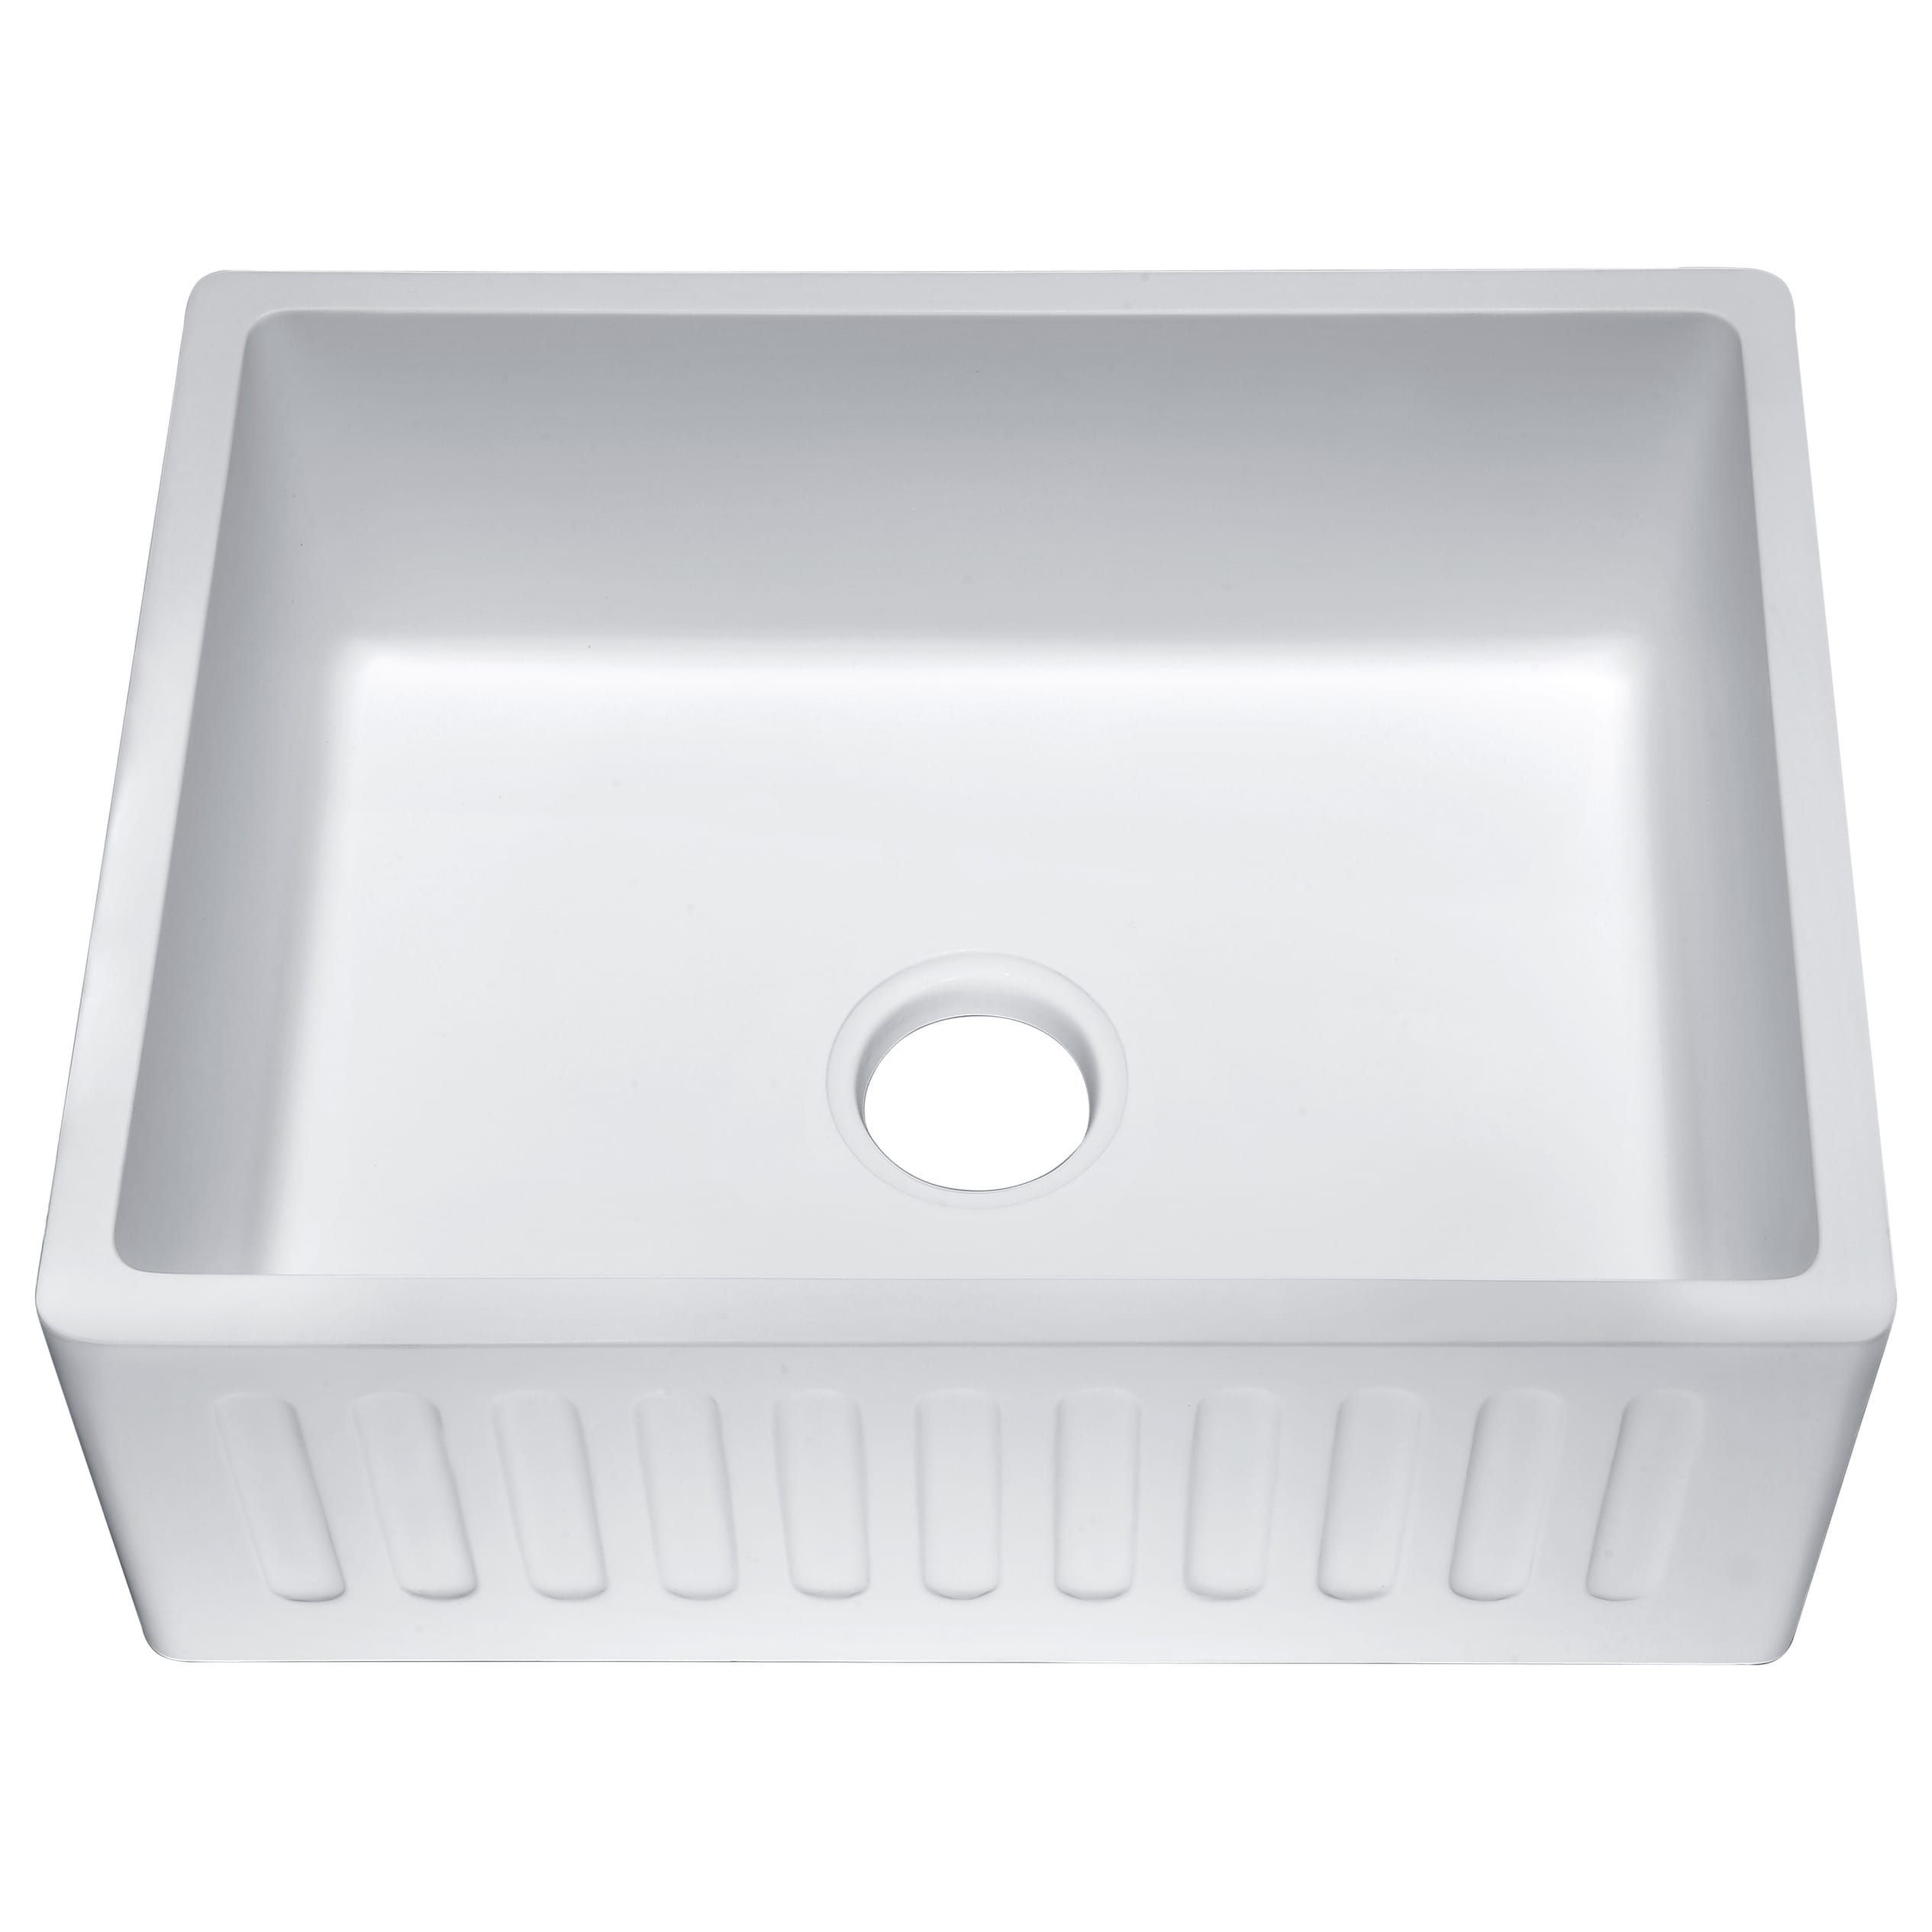 Anzzi Roine Farmhouse Apron Front Man Made Stone 24 In 0 Hole Single Bowl Kitchen Sink In Matte White Products Single Bowl Kitchen Sink Farmhouse Sink Ki